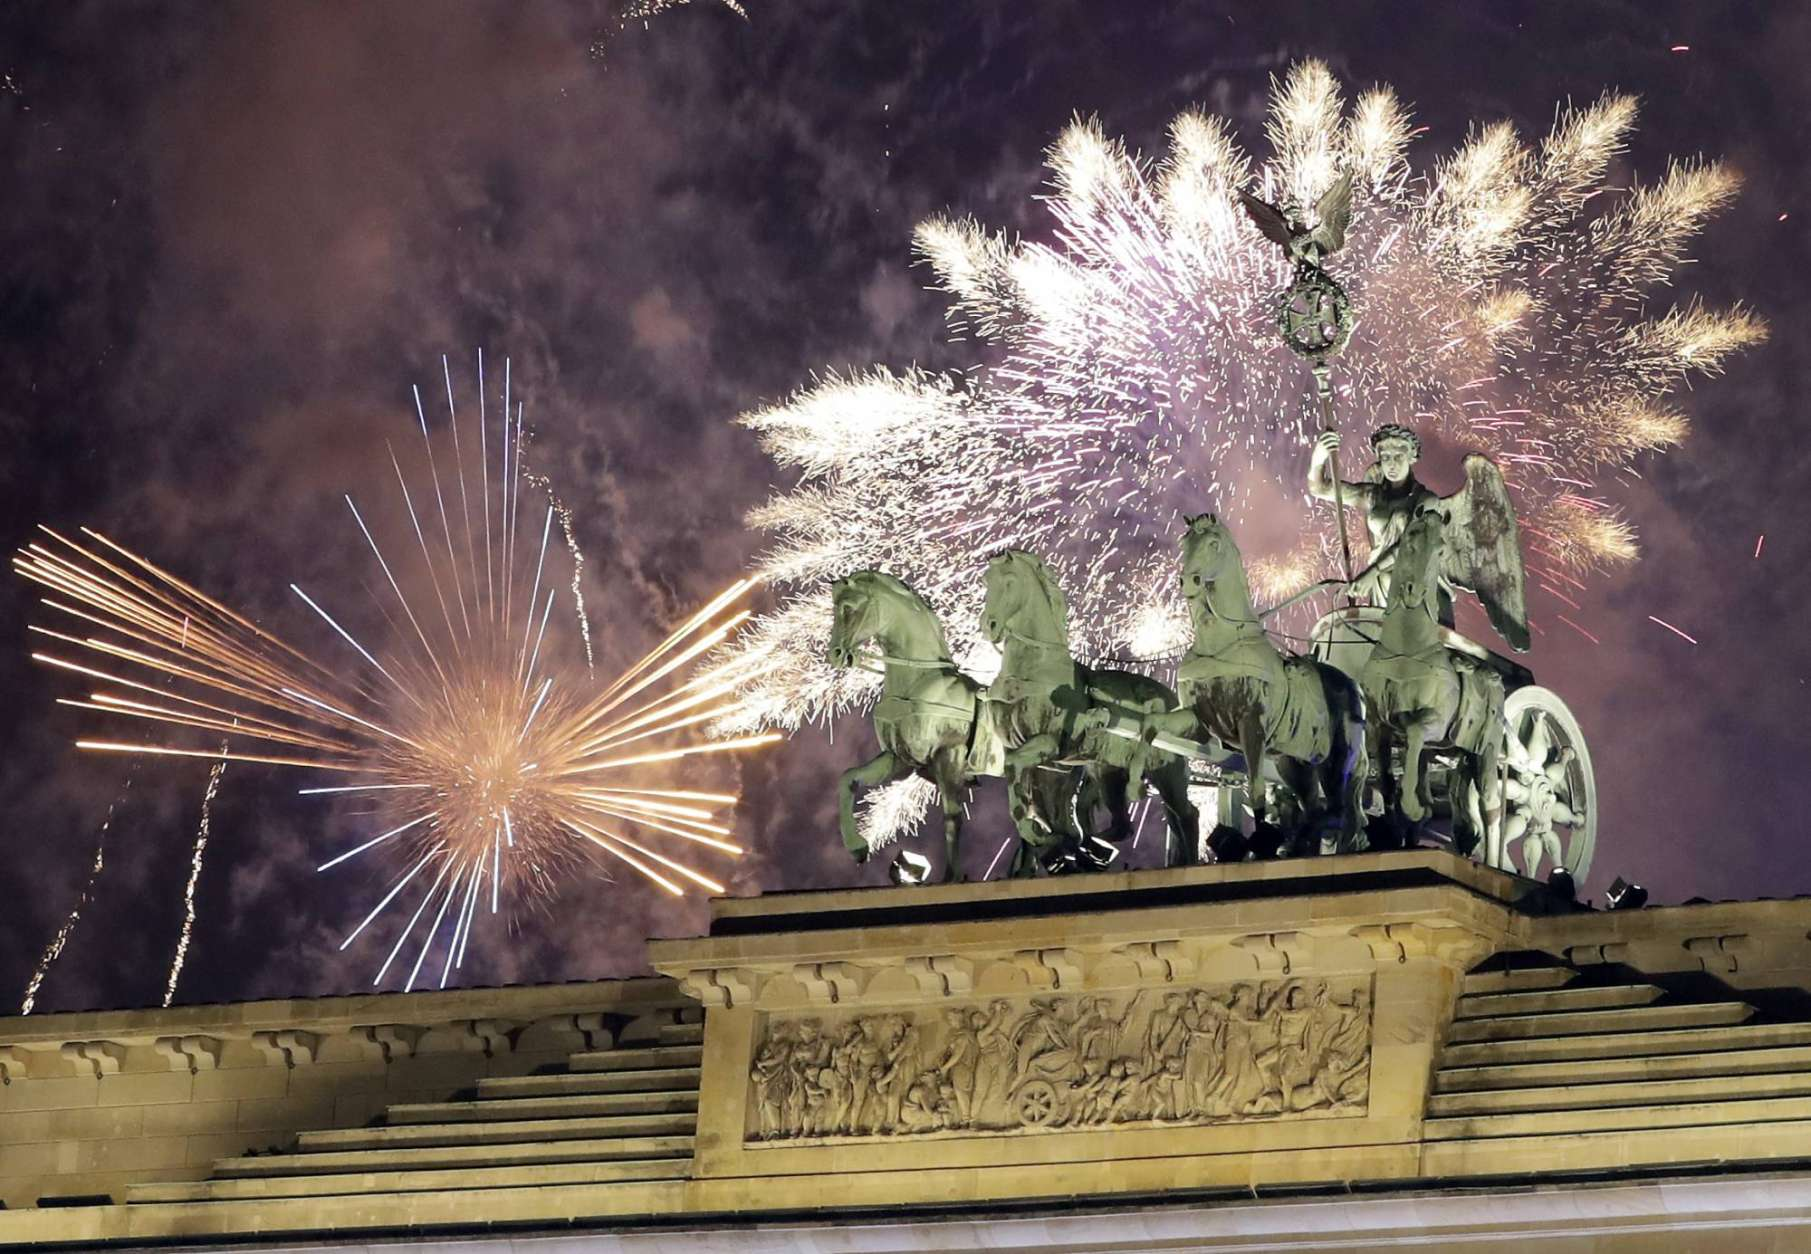 Fireworks light the sky above the Quadriga at the Brandenburg Gate shortly after midnight in Berlin, Germany, Sunday, Jan. 1, 2017. Hundred thousands of people celebrated New Year's Eve welcoming the new year 2017 in Germany's capital. (AP Photo/Michael Sohn)